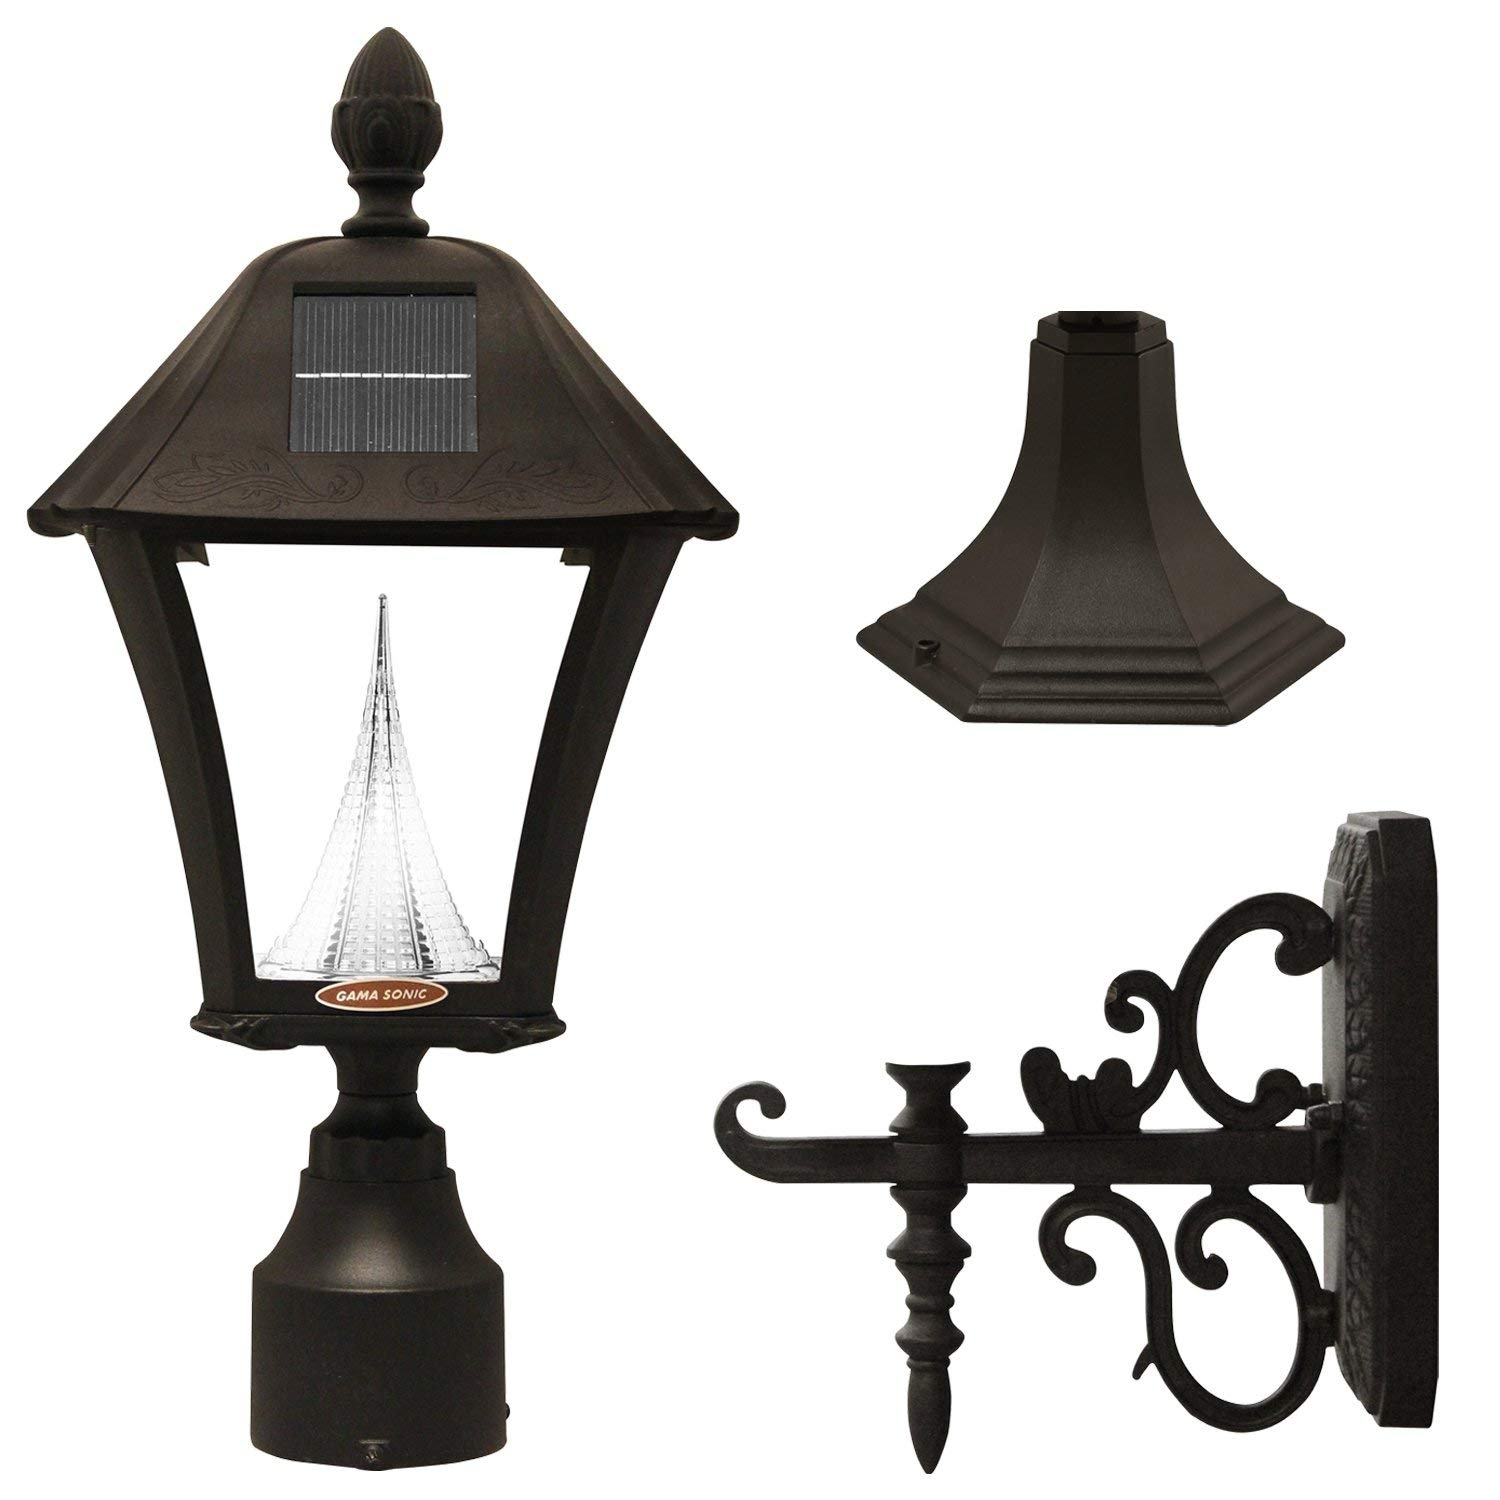 Amazon : Gama Sonic Baytown Solar Outdoor Lamp Gs-106Fpw-B pertaining to Xl Outdoor Lanterns (Image 1 of 20)